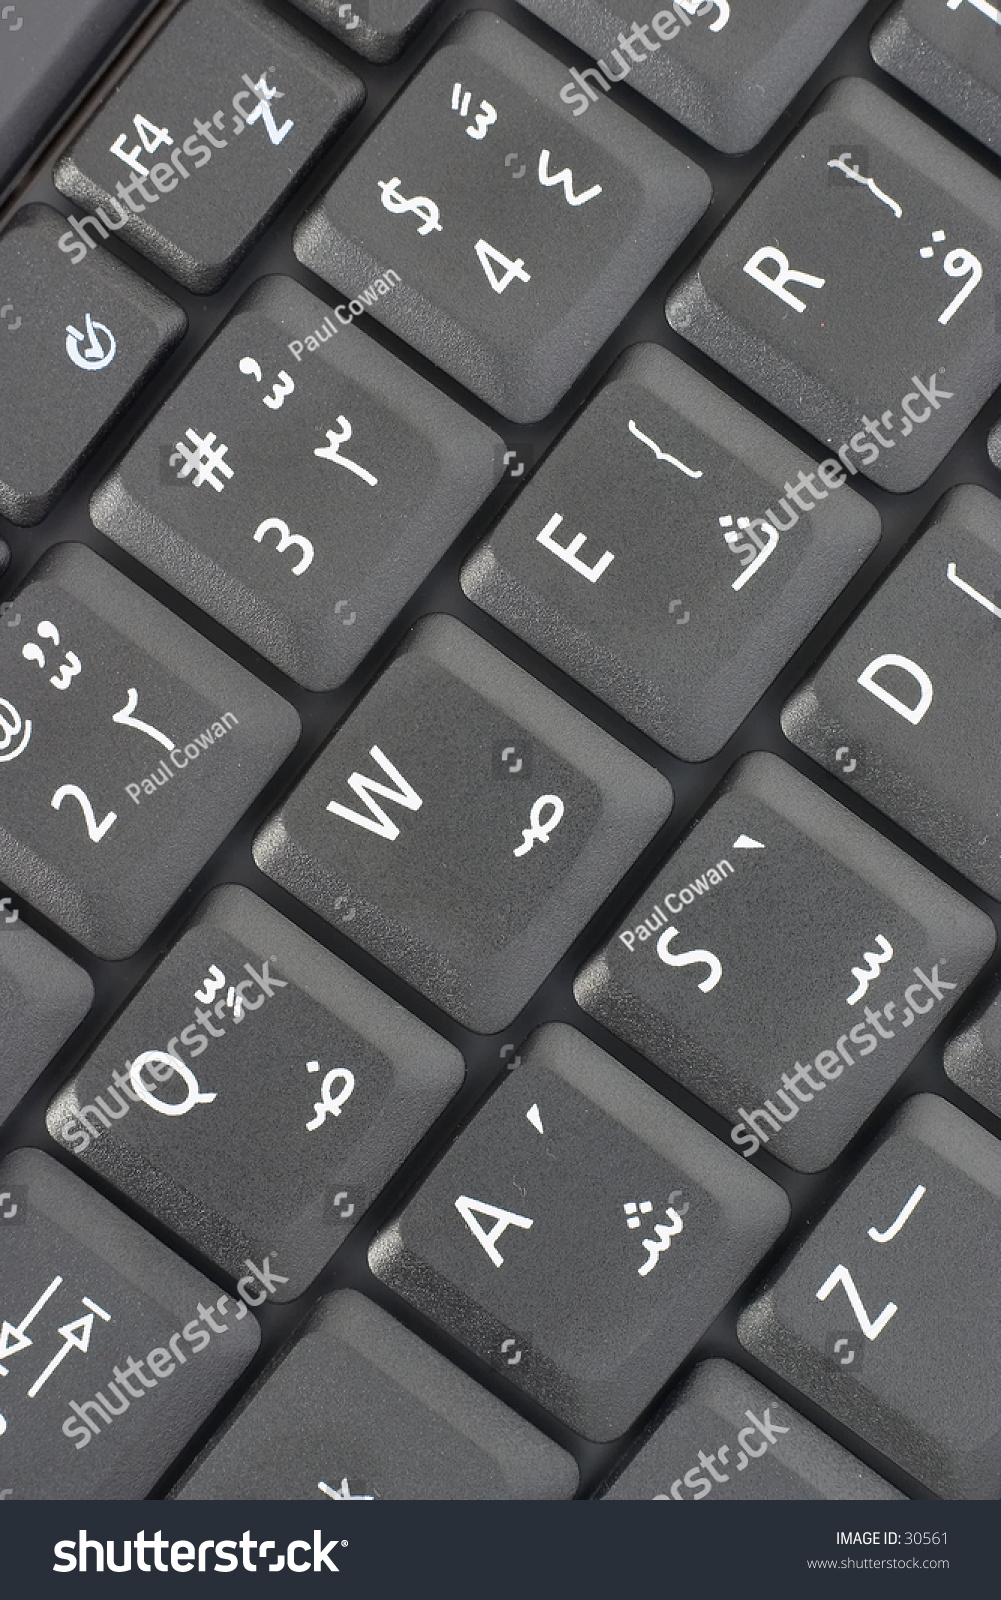 Keyboard Arabic Enabled Computer Showing Letters Stock Photo